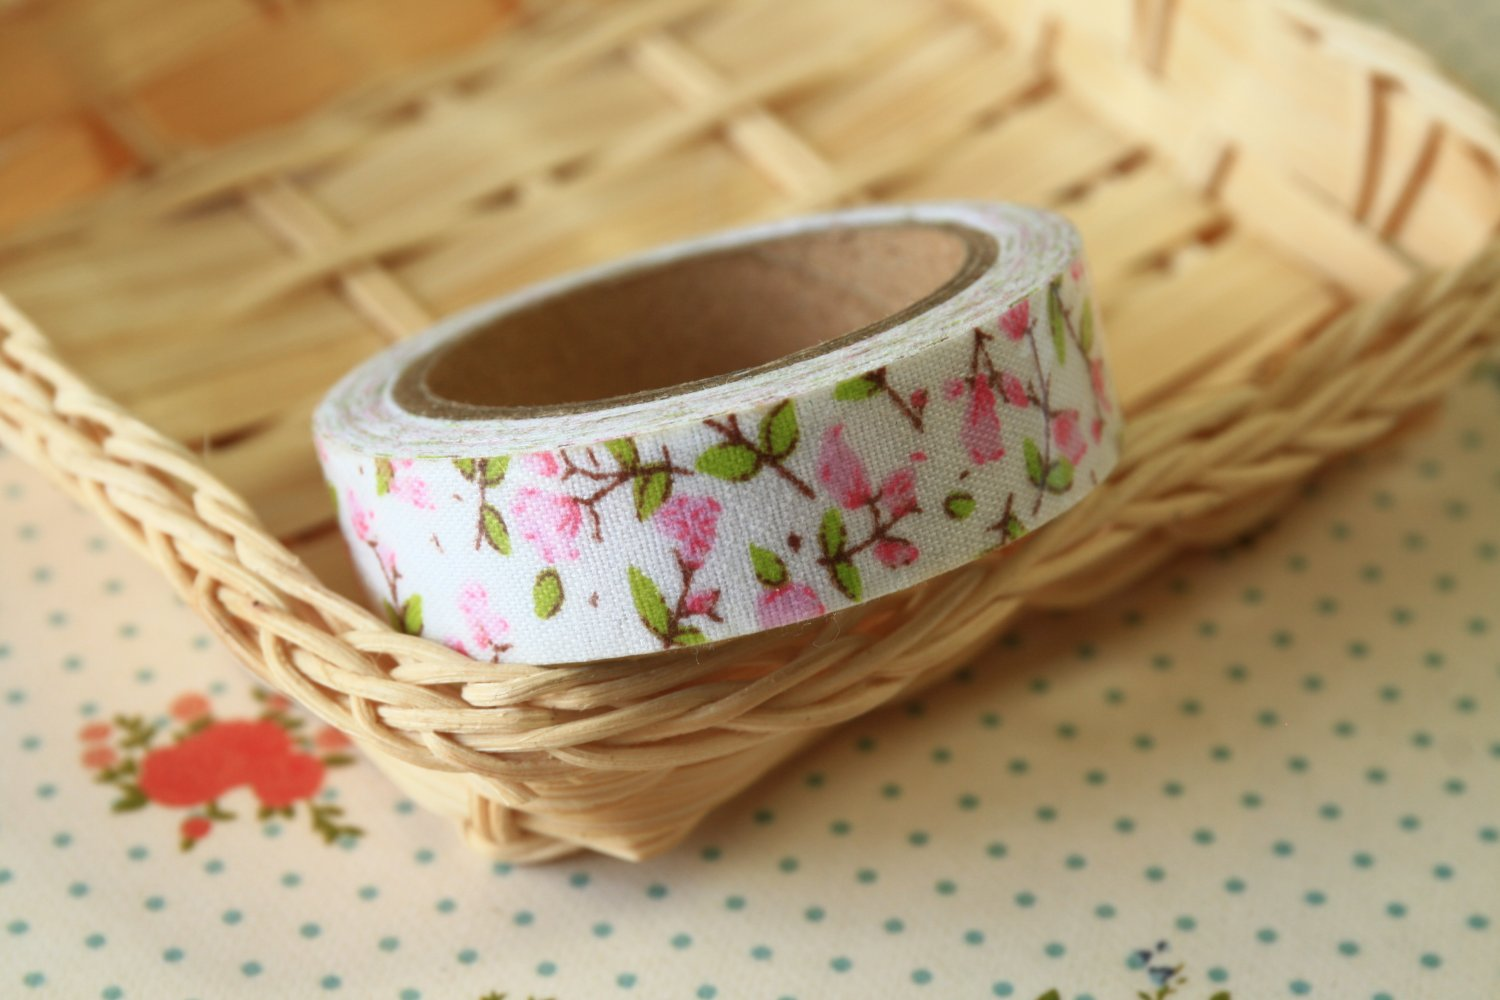 Pink Spray Garden Flowers deco fabric tape